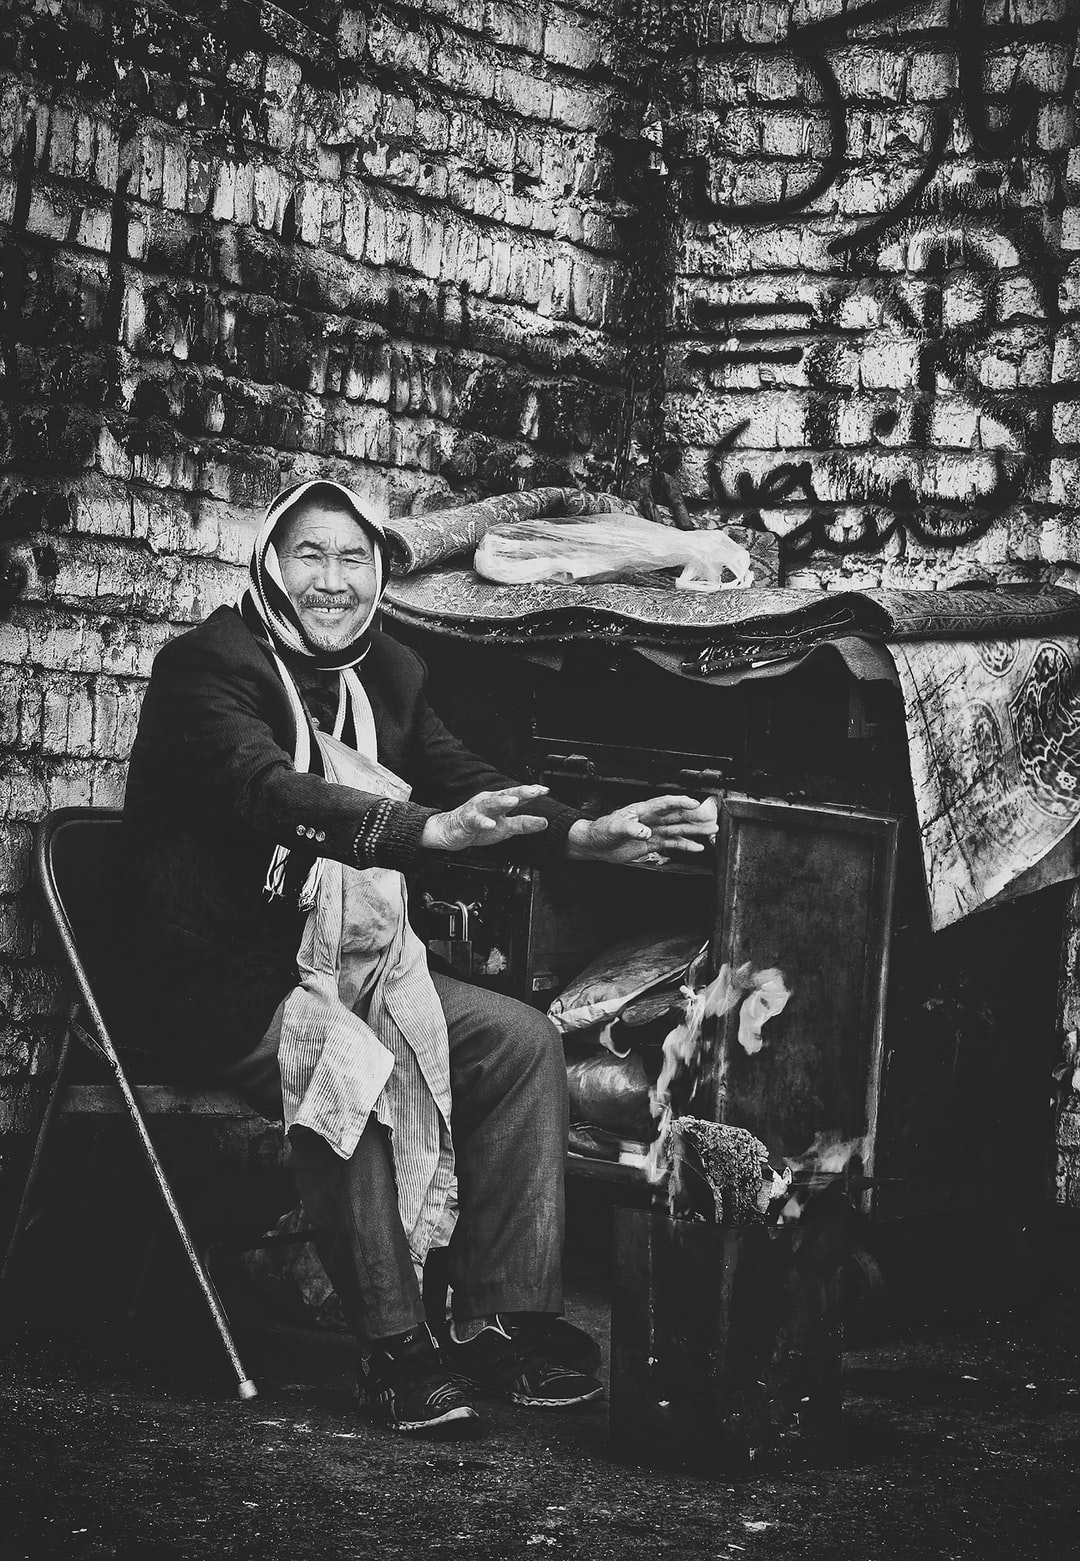 This kind man was sitting at the corner of the street Despite the cold and hard work, he still had a beautiful smile on his lips .